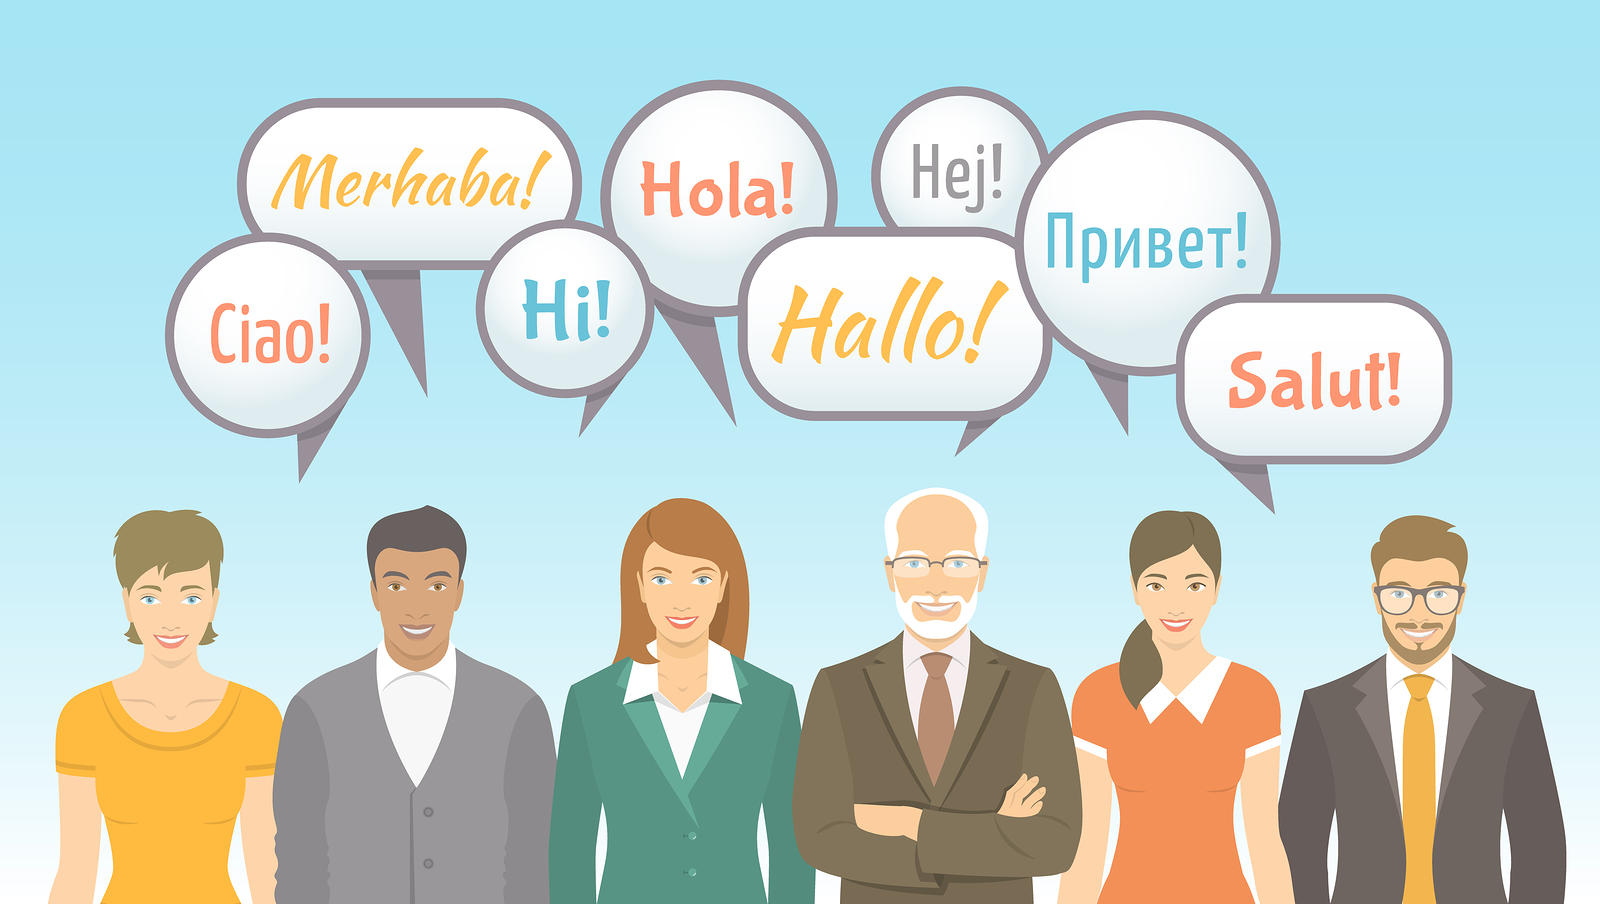 Foreign language school for adults conceptual banner with group of men and women of different ages and lifestyles saying hello.